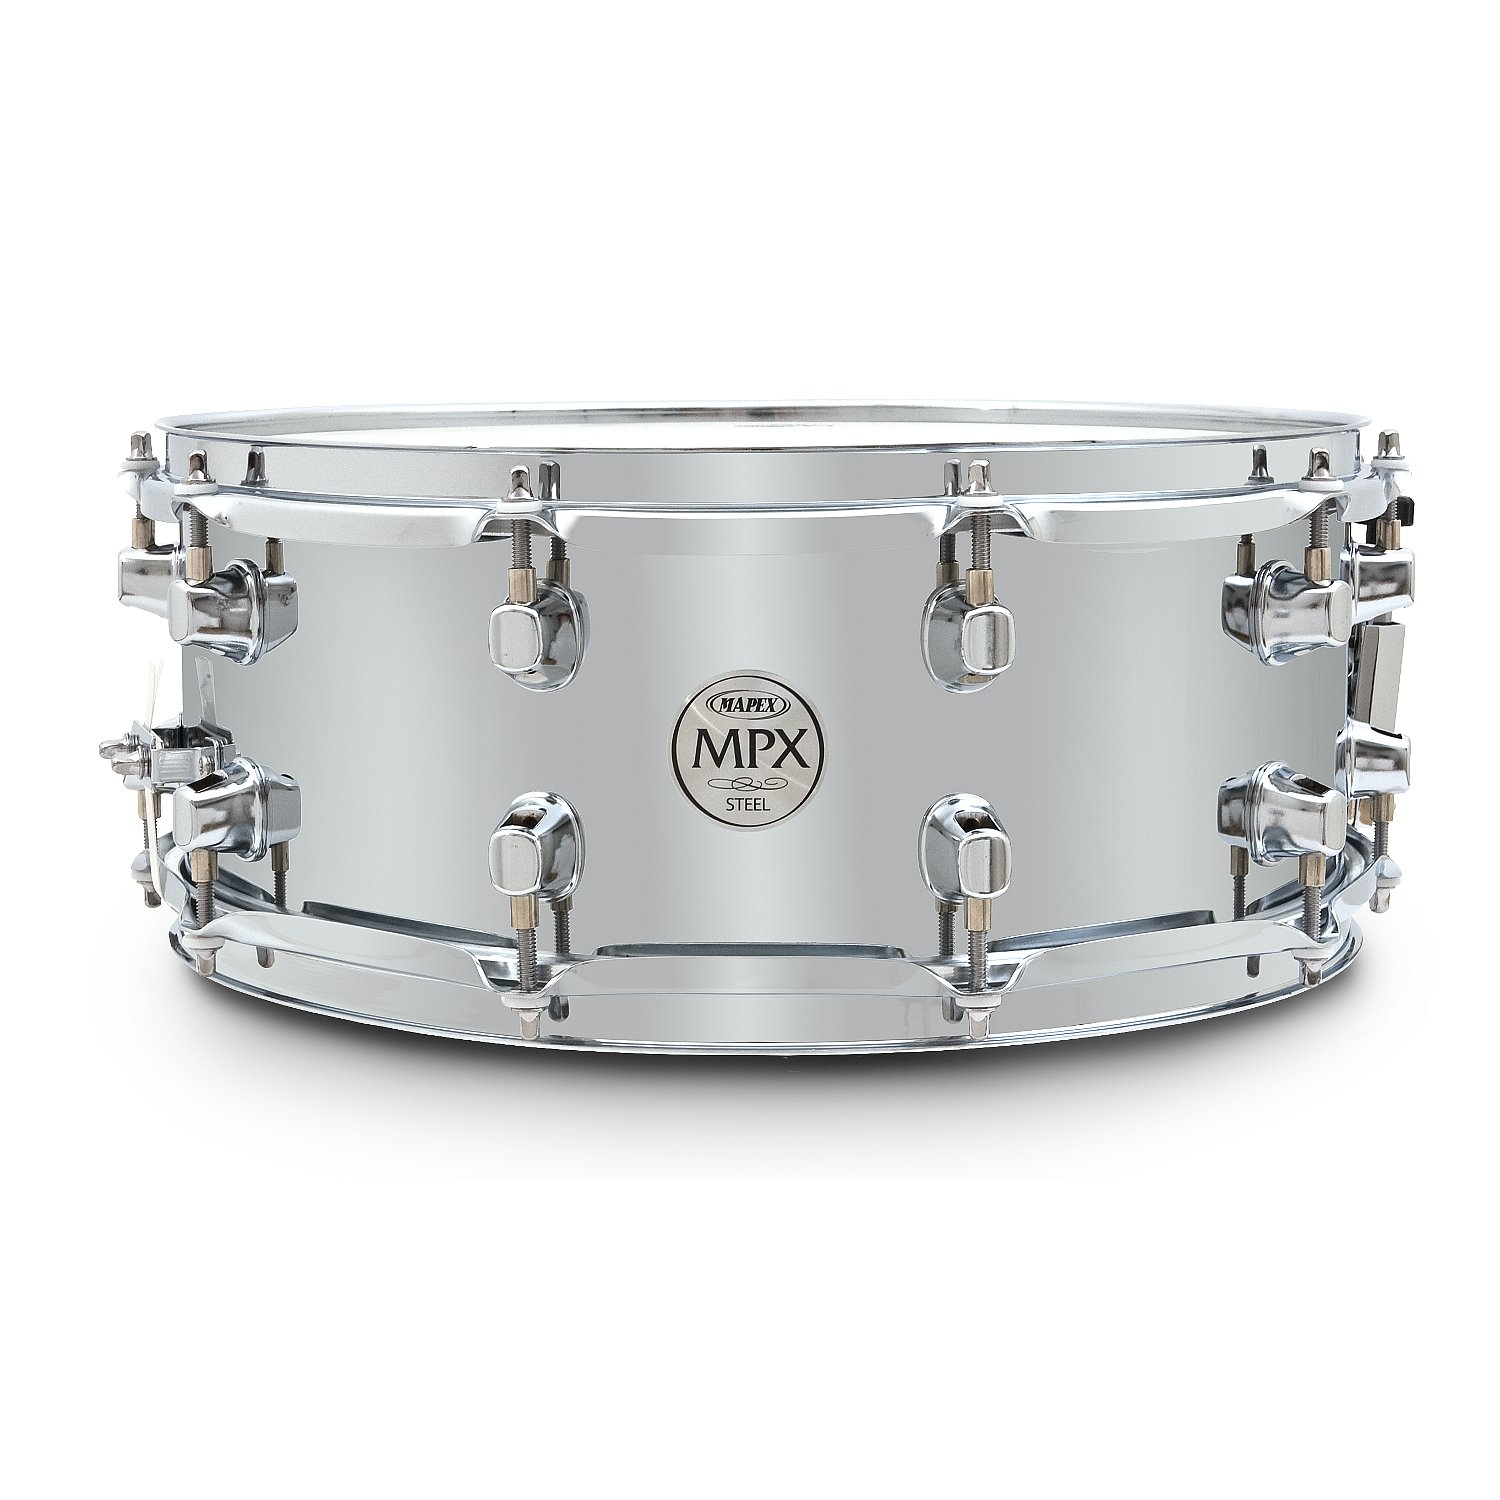 Mapex MPX Steel Snare Drum14 x 5,5